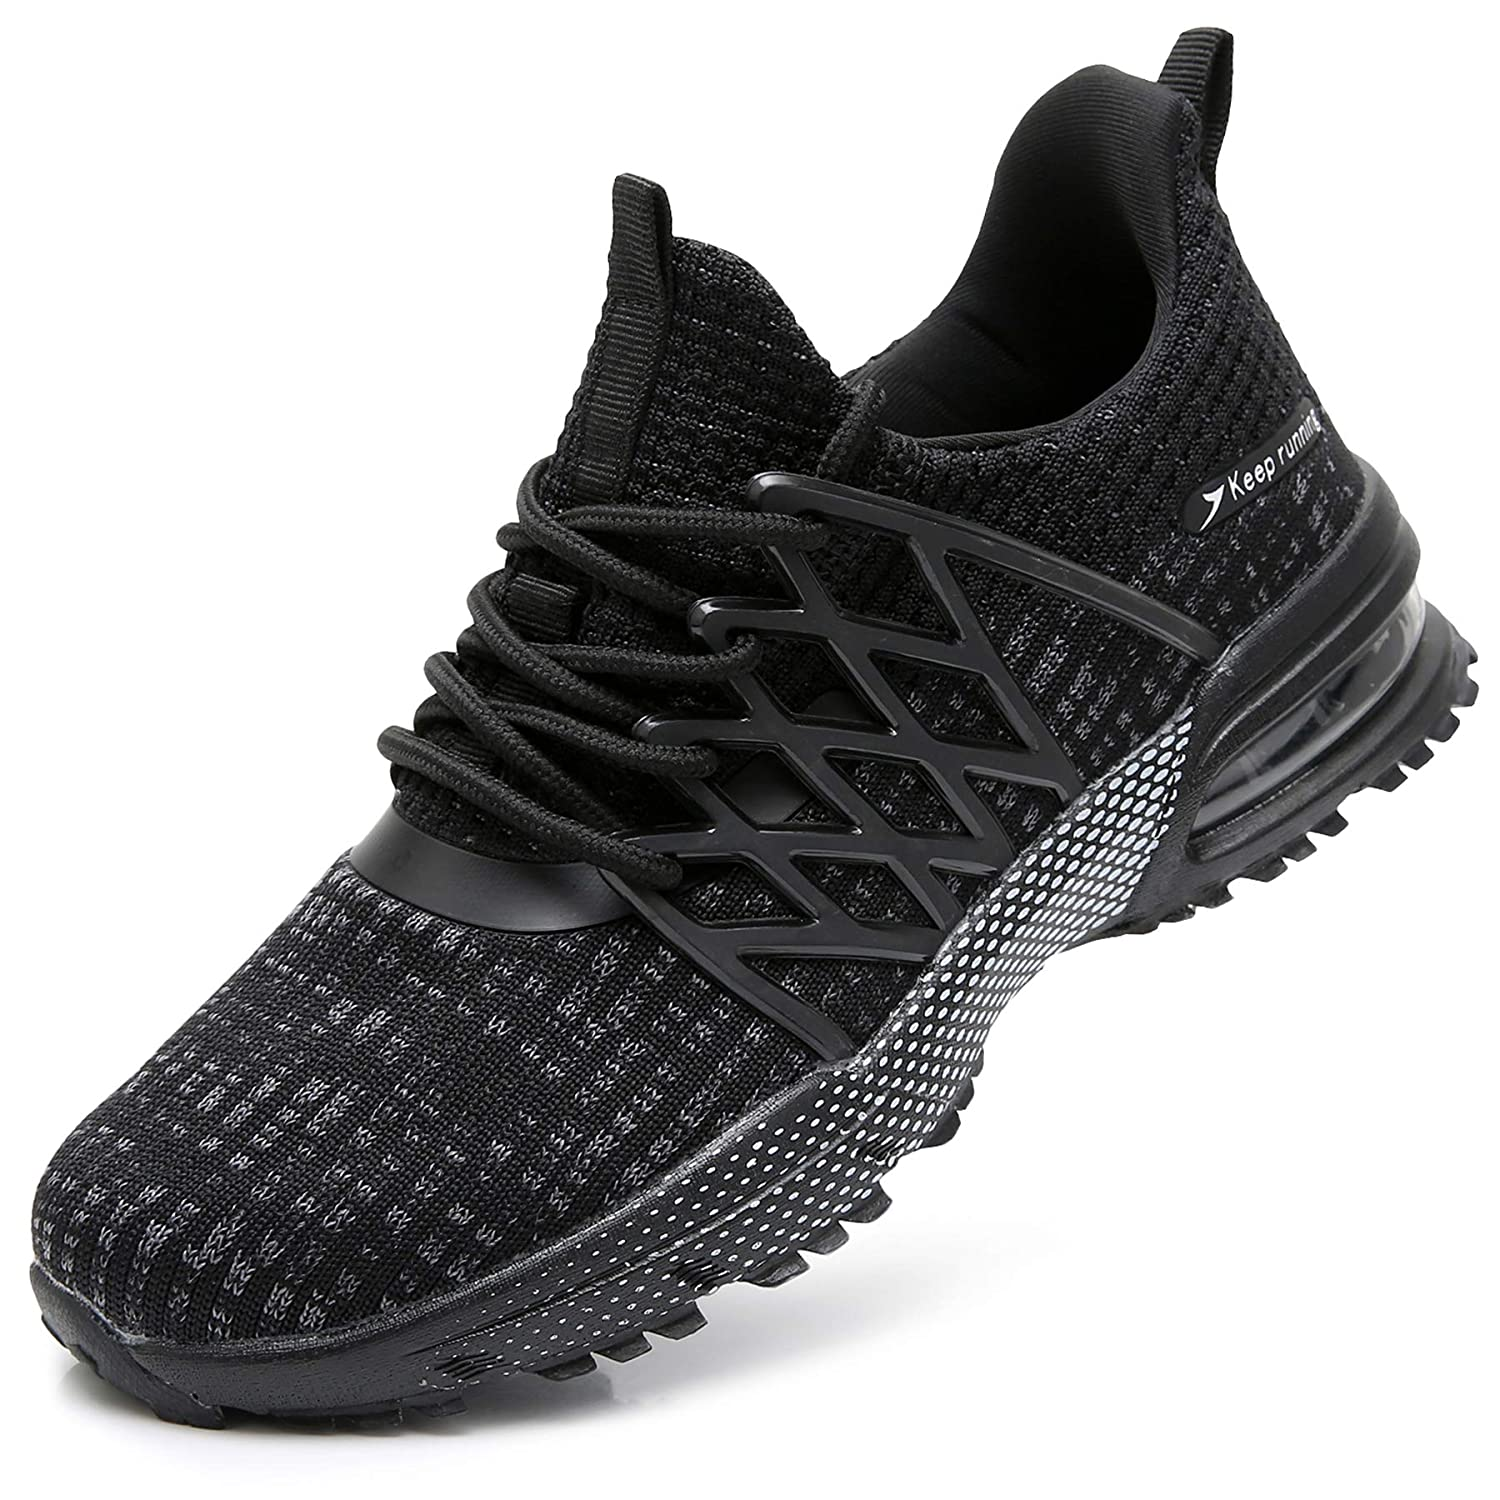 08047a7186a QAUPPE Womens Breathable Running Tennis Shoes Lightweight Air Sports Gym  Jogging Walking Sneakers US5.5-10 B(M)